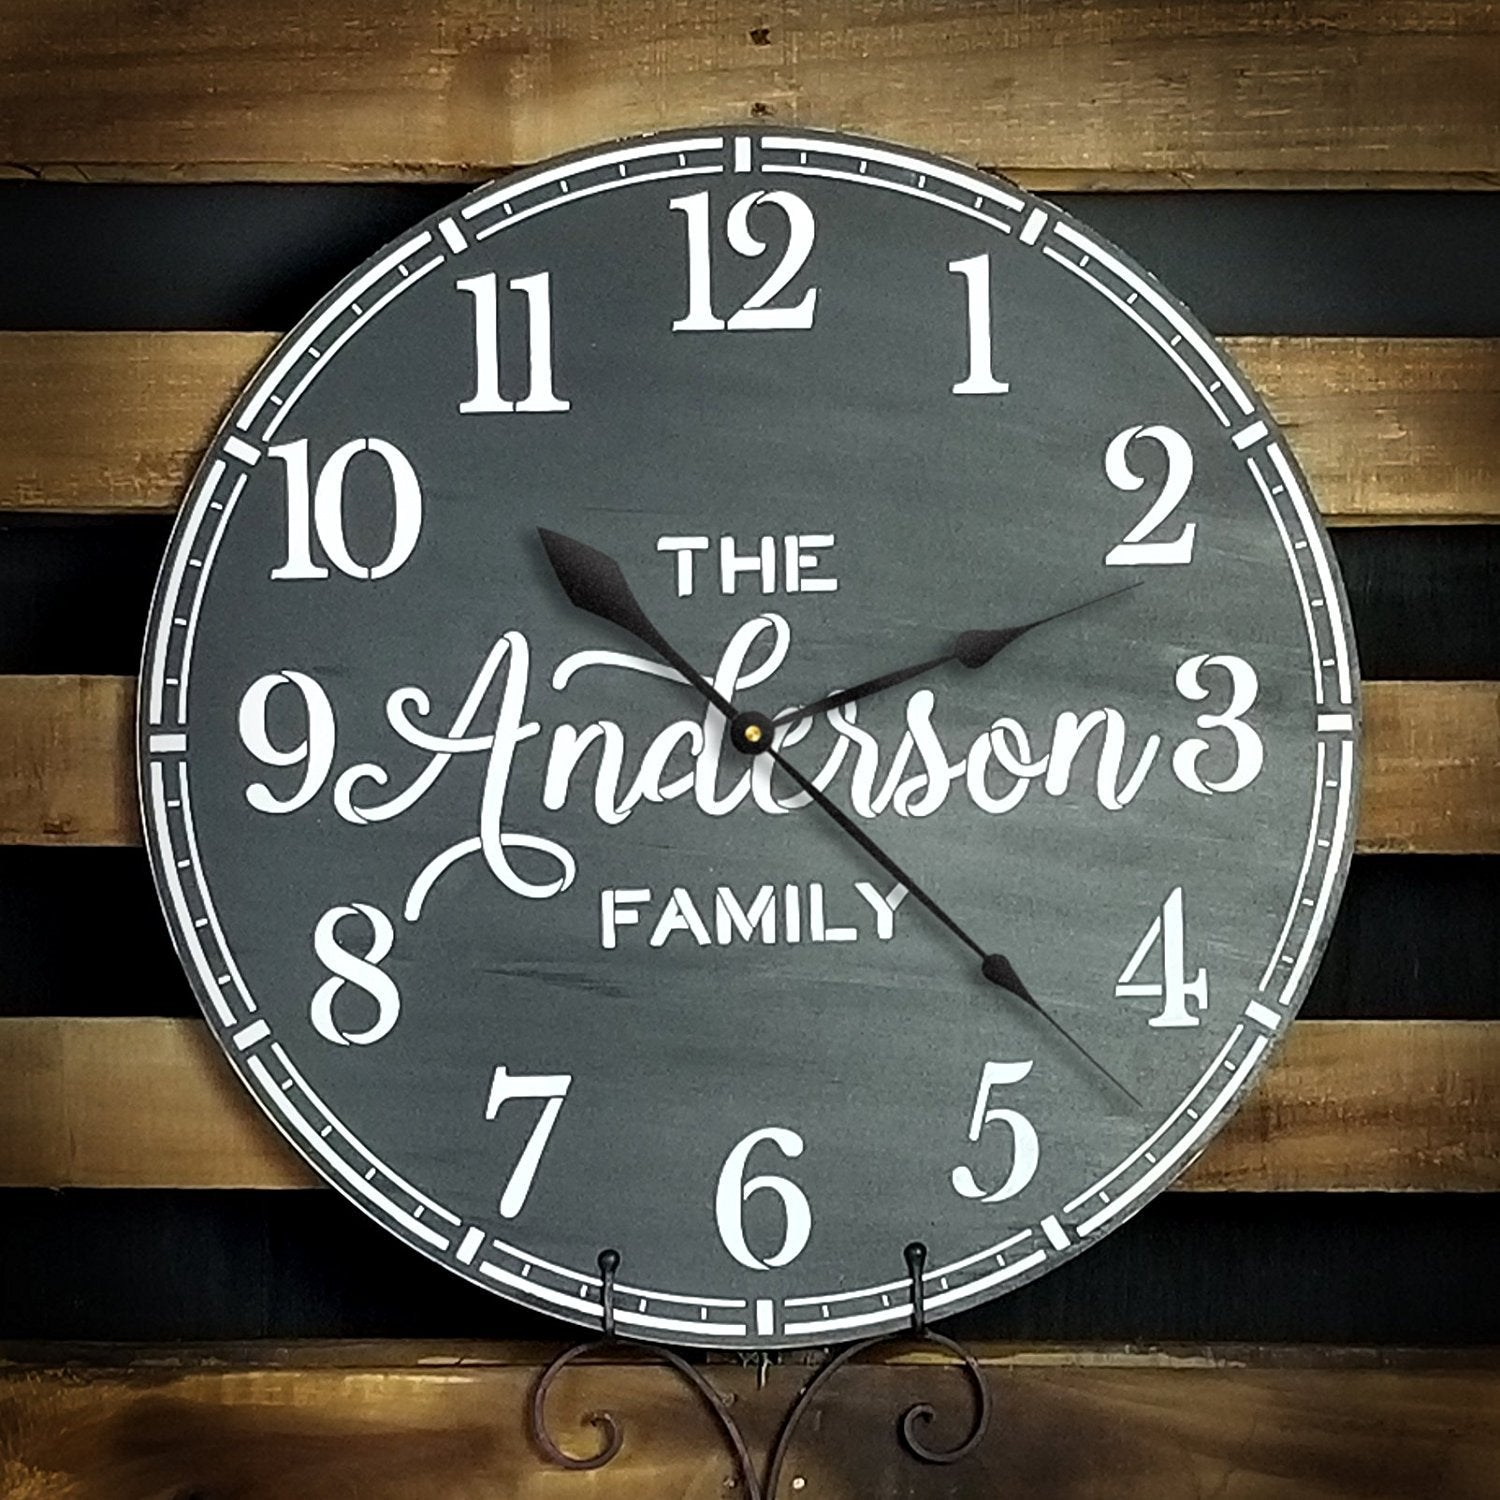 "Coffee House Clock Face Stencil by StudioR12 | Classic Numbers Clock Art - Reusable Mylar Template | Painting, Chalk, Mixed Media | DIY Decor - STCL2331 - SELECT SIZE (18"" Diameter)"